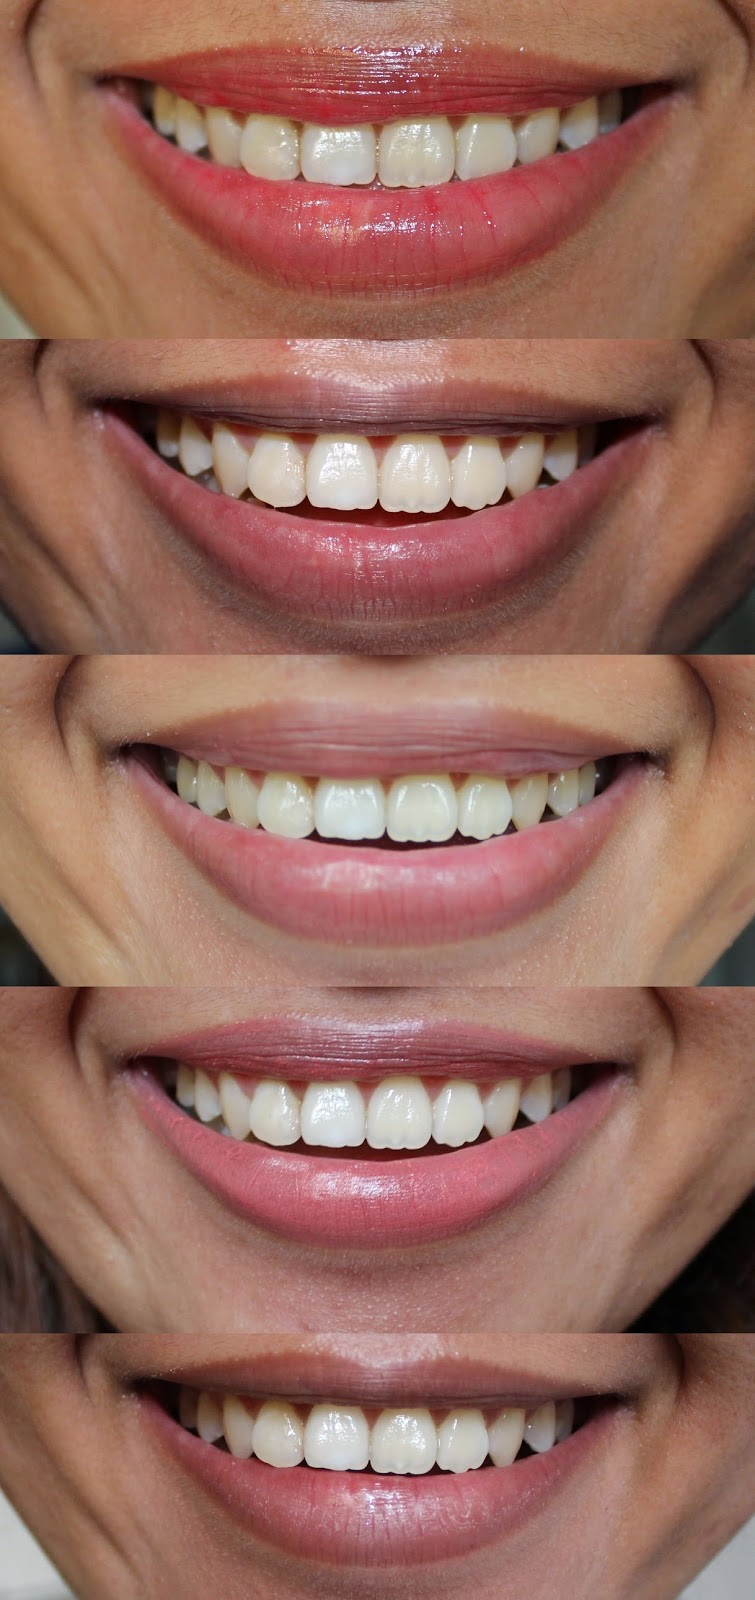 Colgate Optic White Review >> Colgate Optic White Toothpaste Review